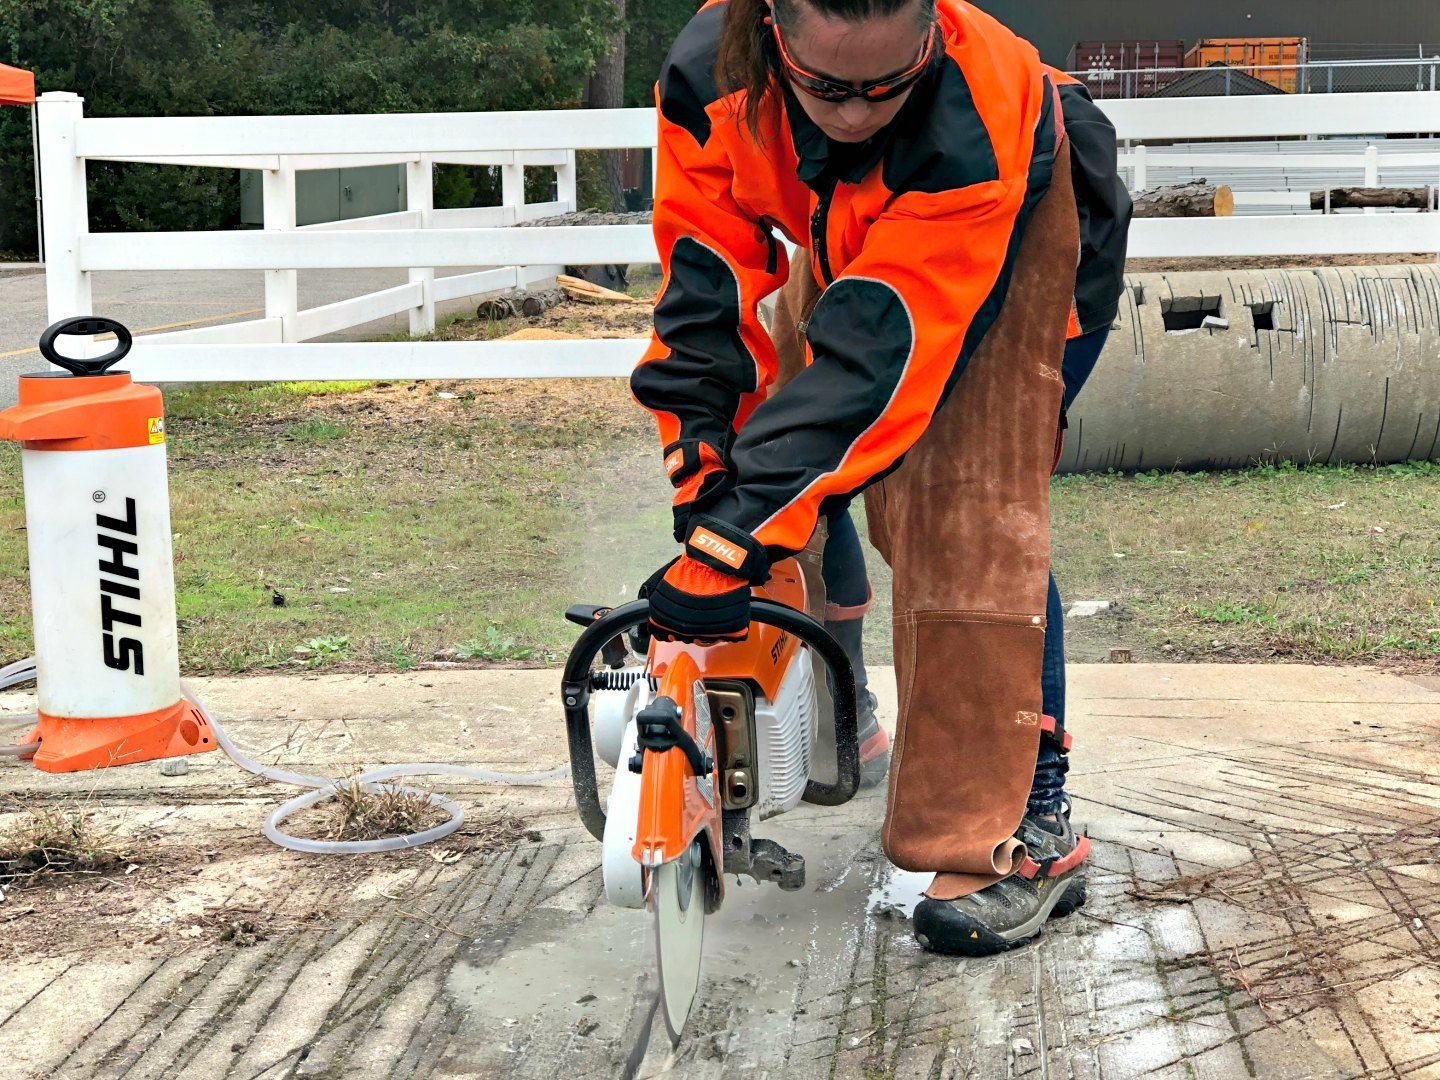 me cutting into concrete at STIHL headquarters